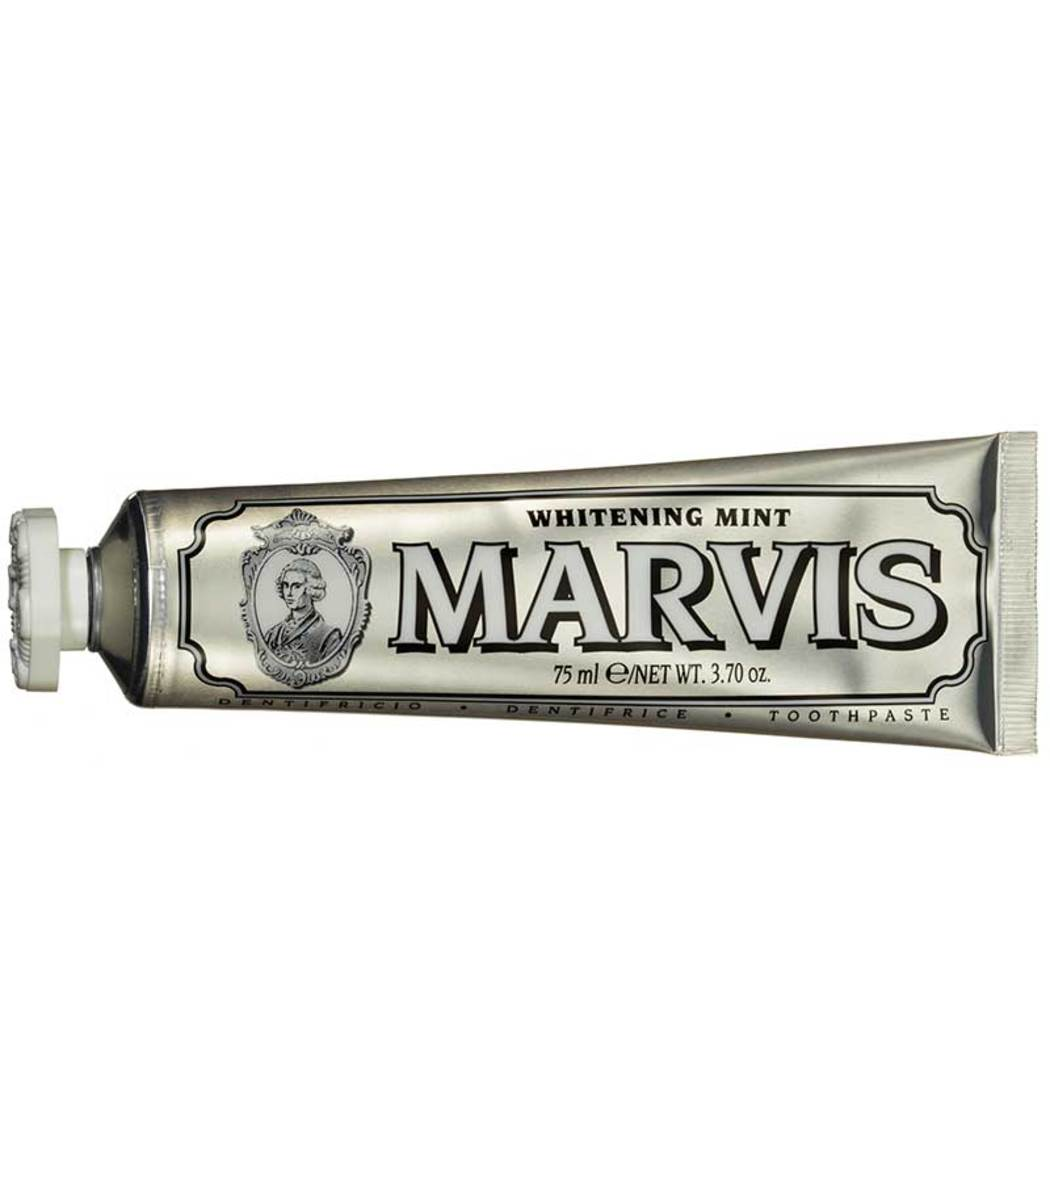 Marvis' Whitening Mint Toothpaste